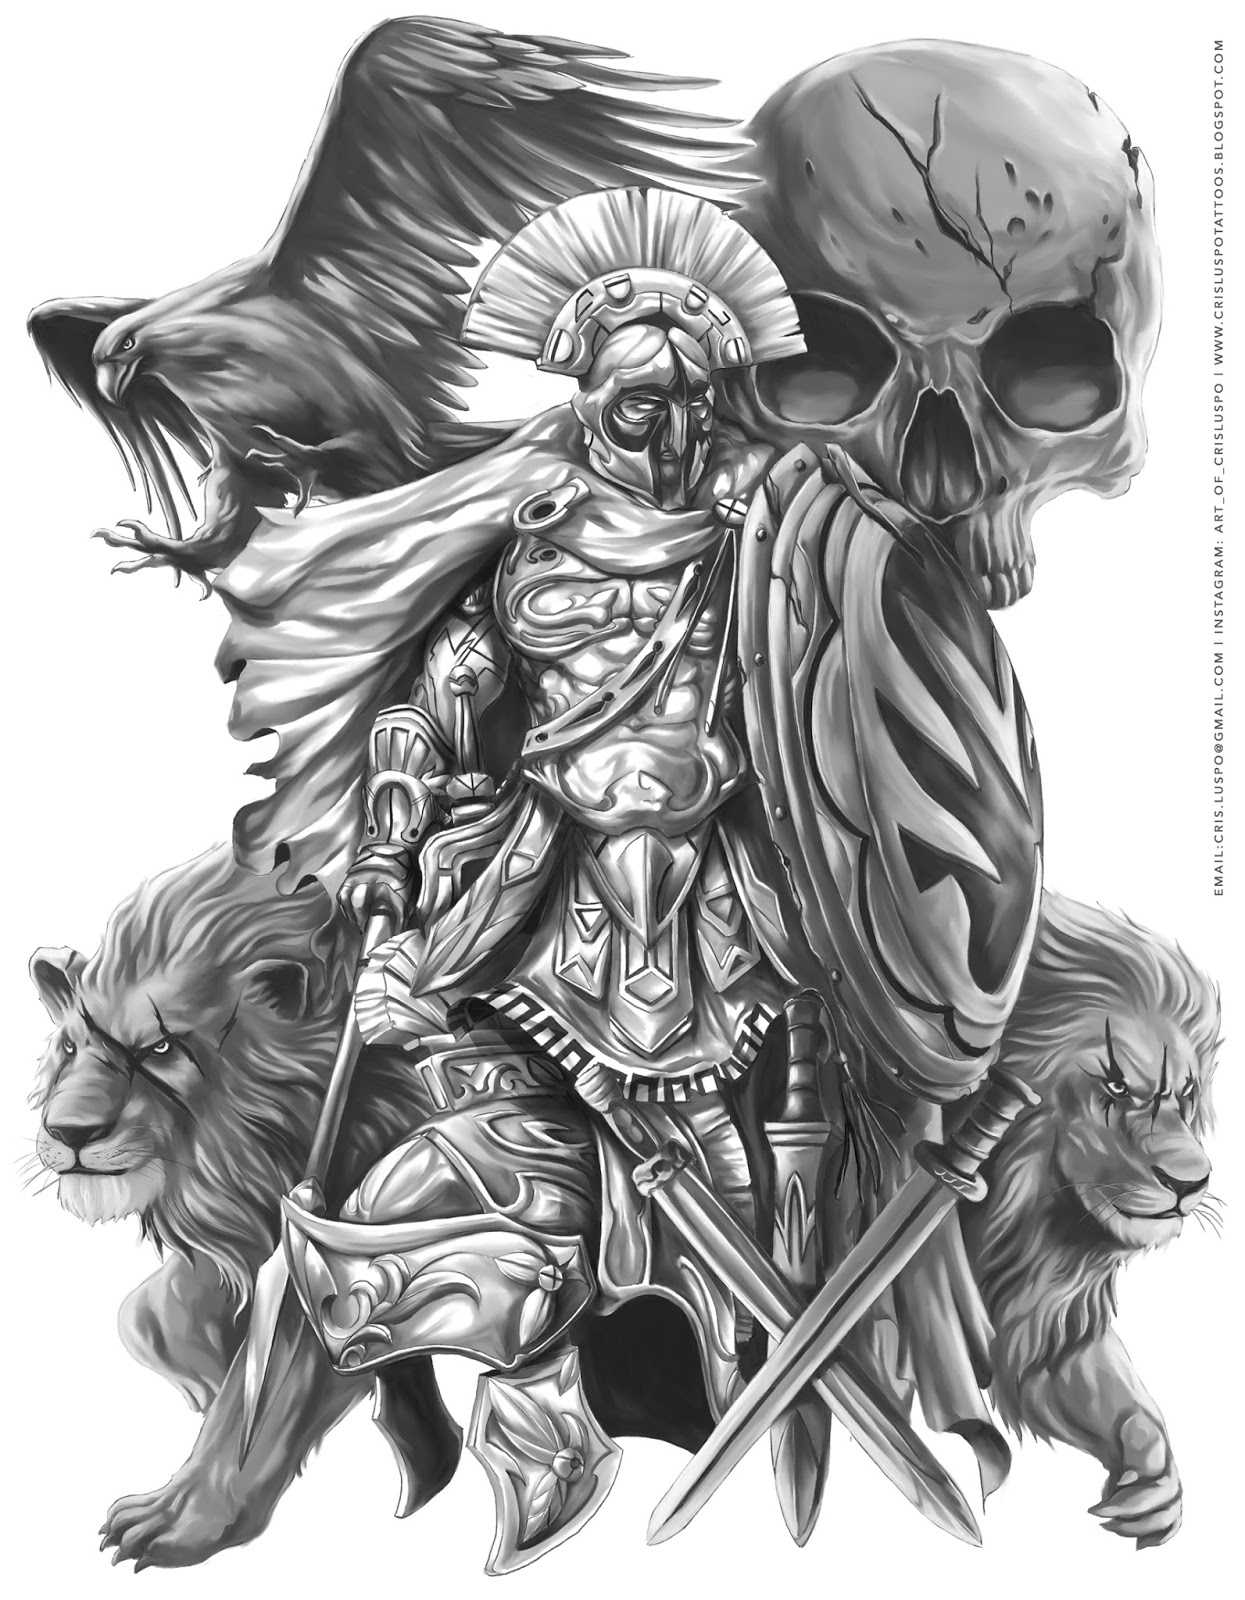 warrior archangel michael tattoo google search tattoos pinterest archangel michael. Black Bedroom Furniture Sets. Home Design Ideas